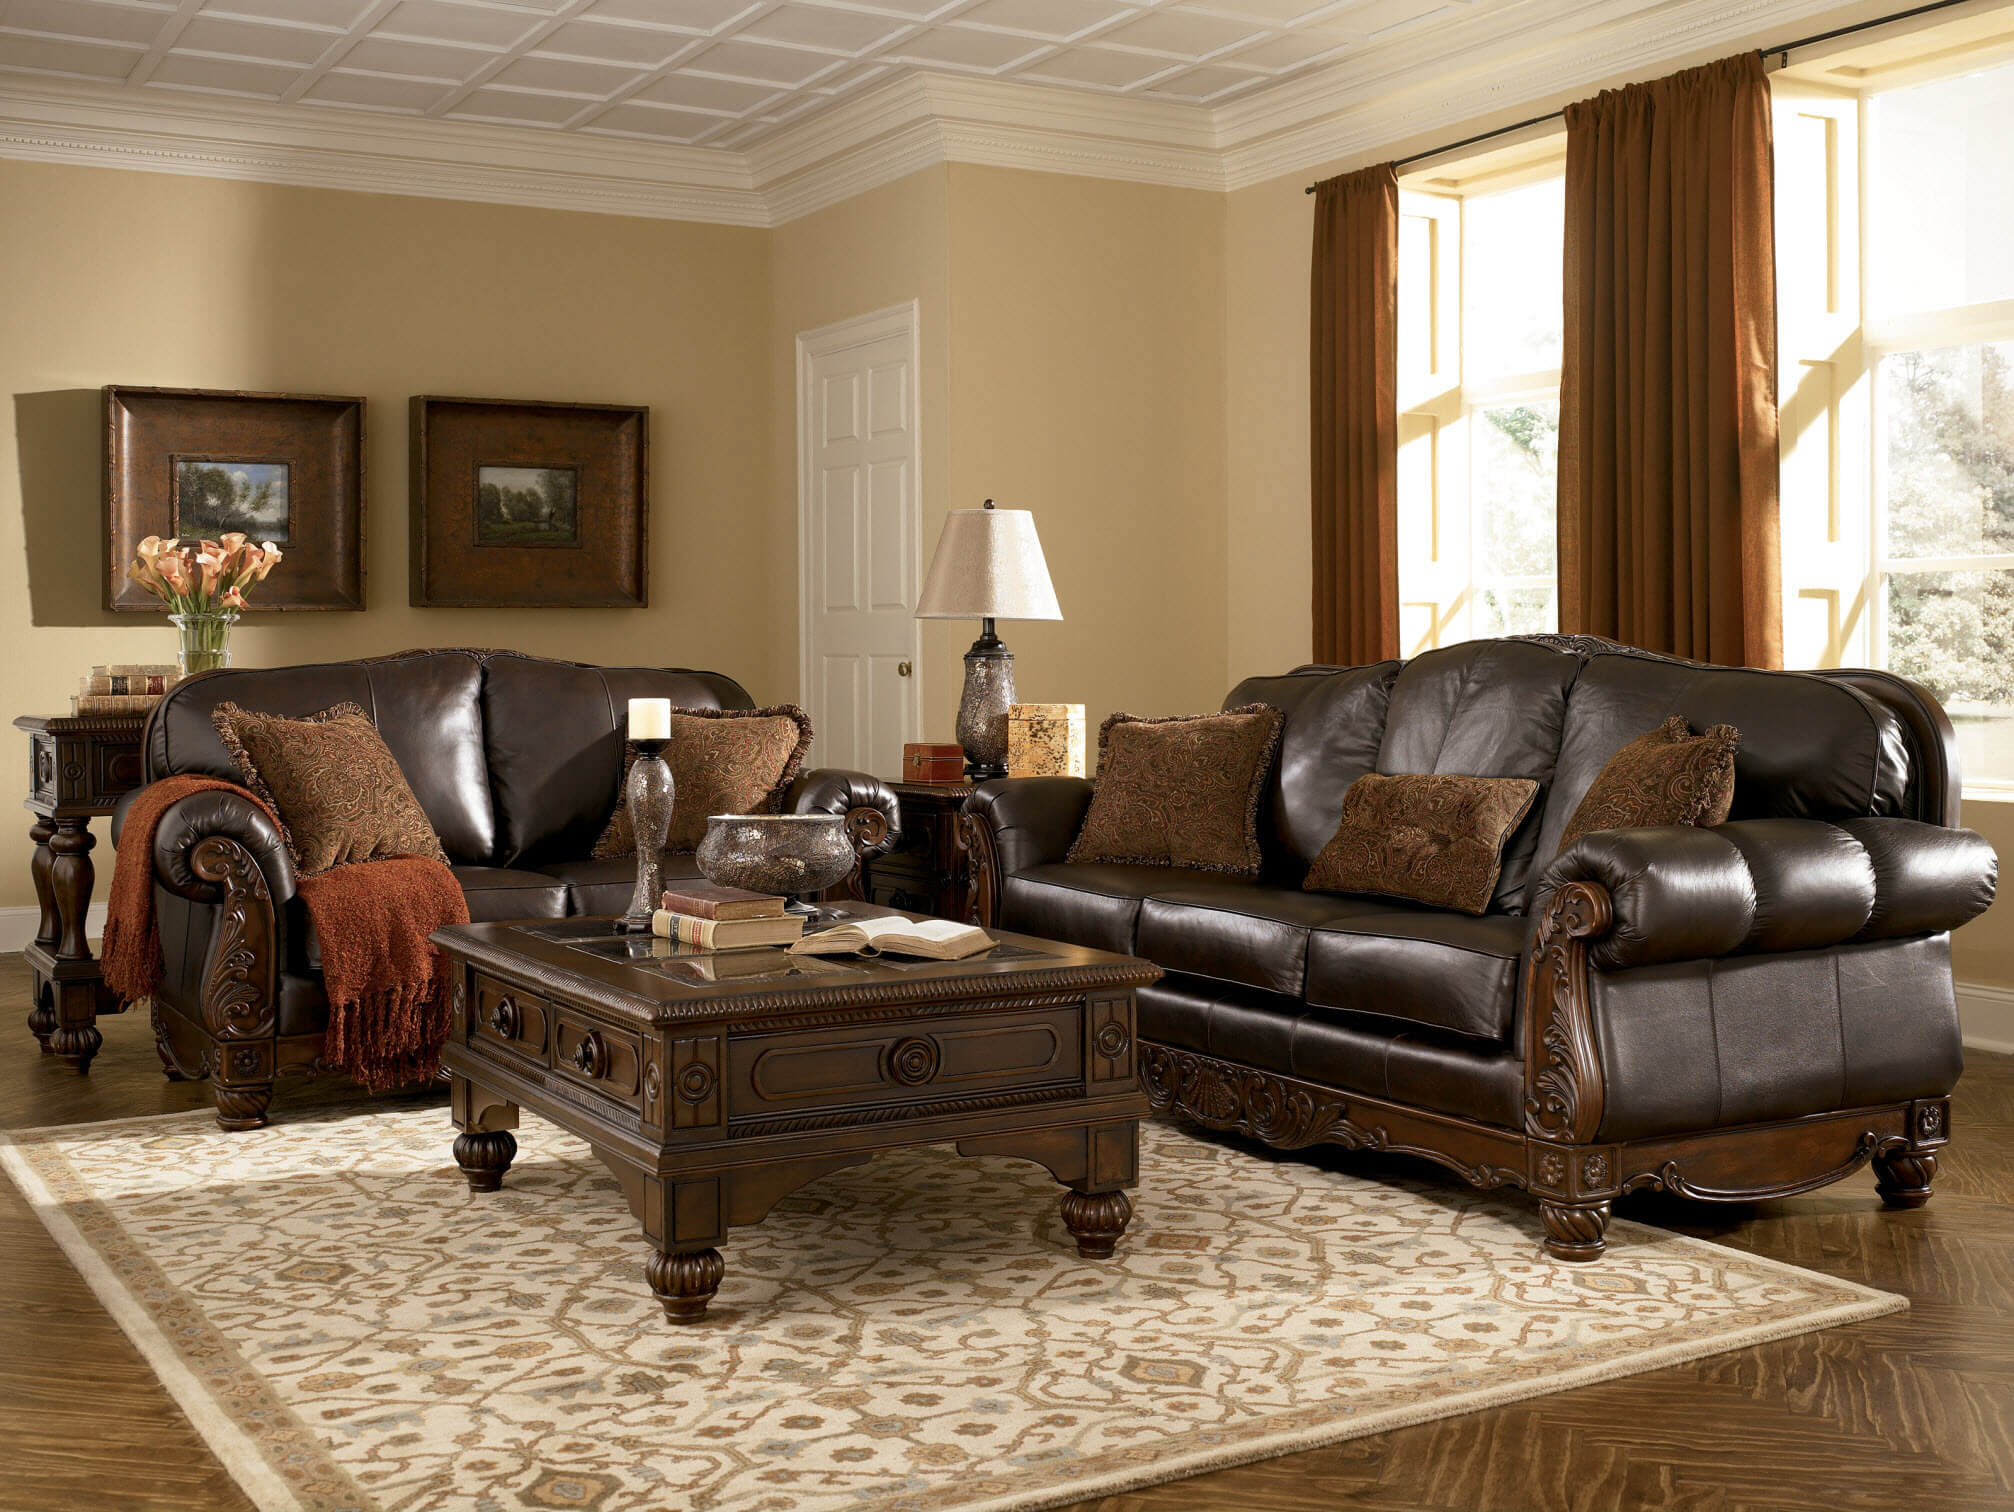 Ashley north shore sofa and loveseat living room sets - Leather furniture for small living room ...